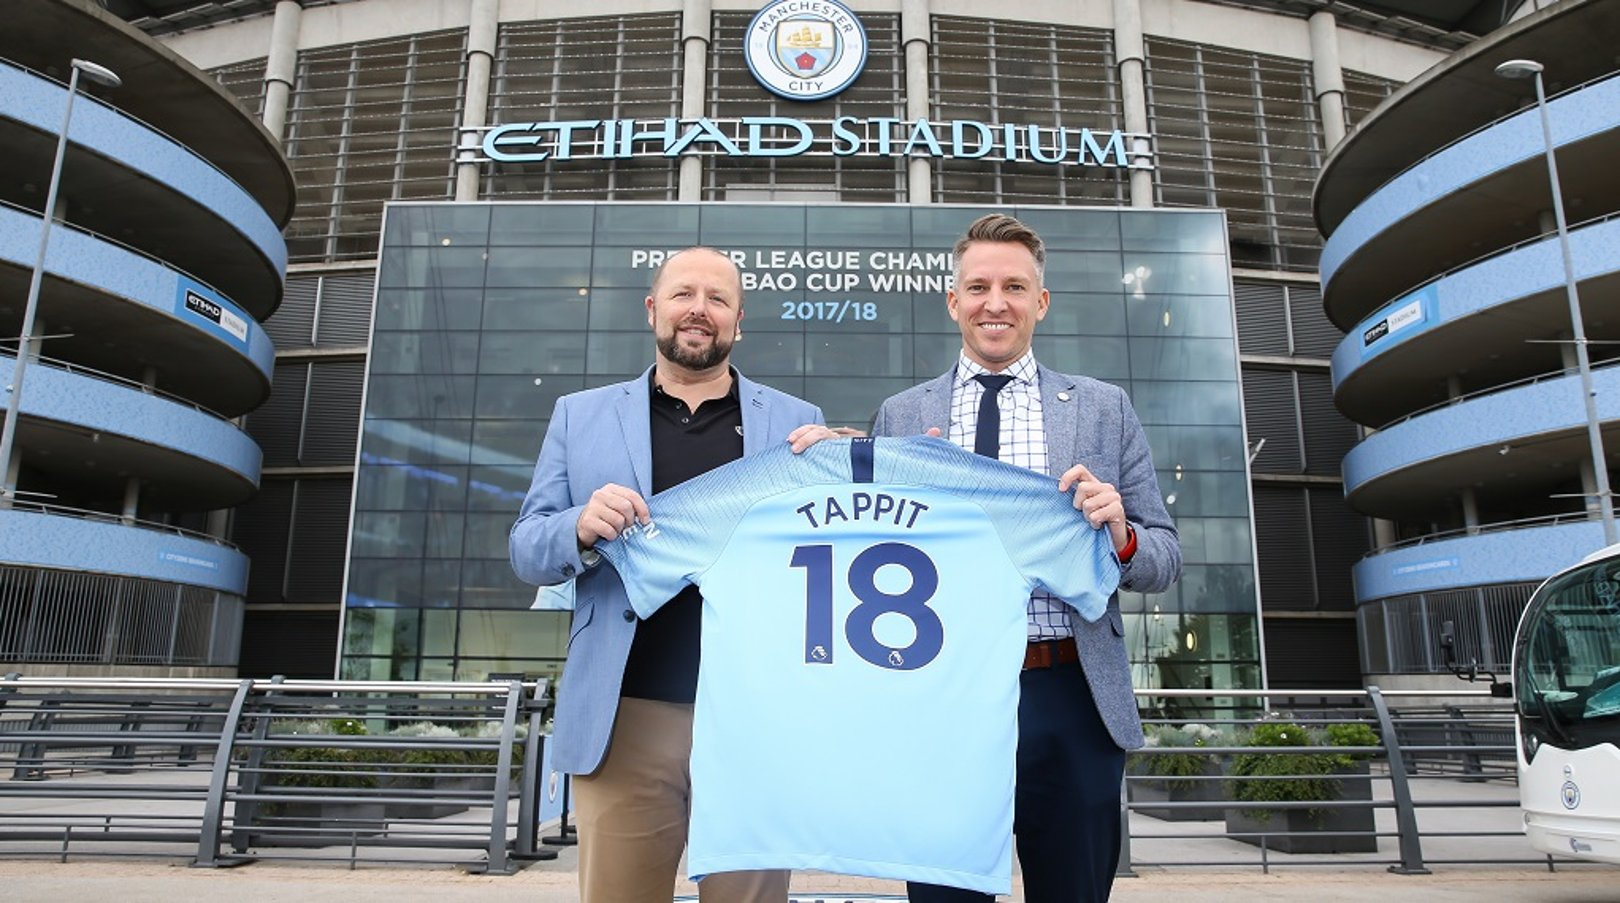 Man City secures partnership with tappit